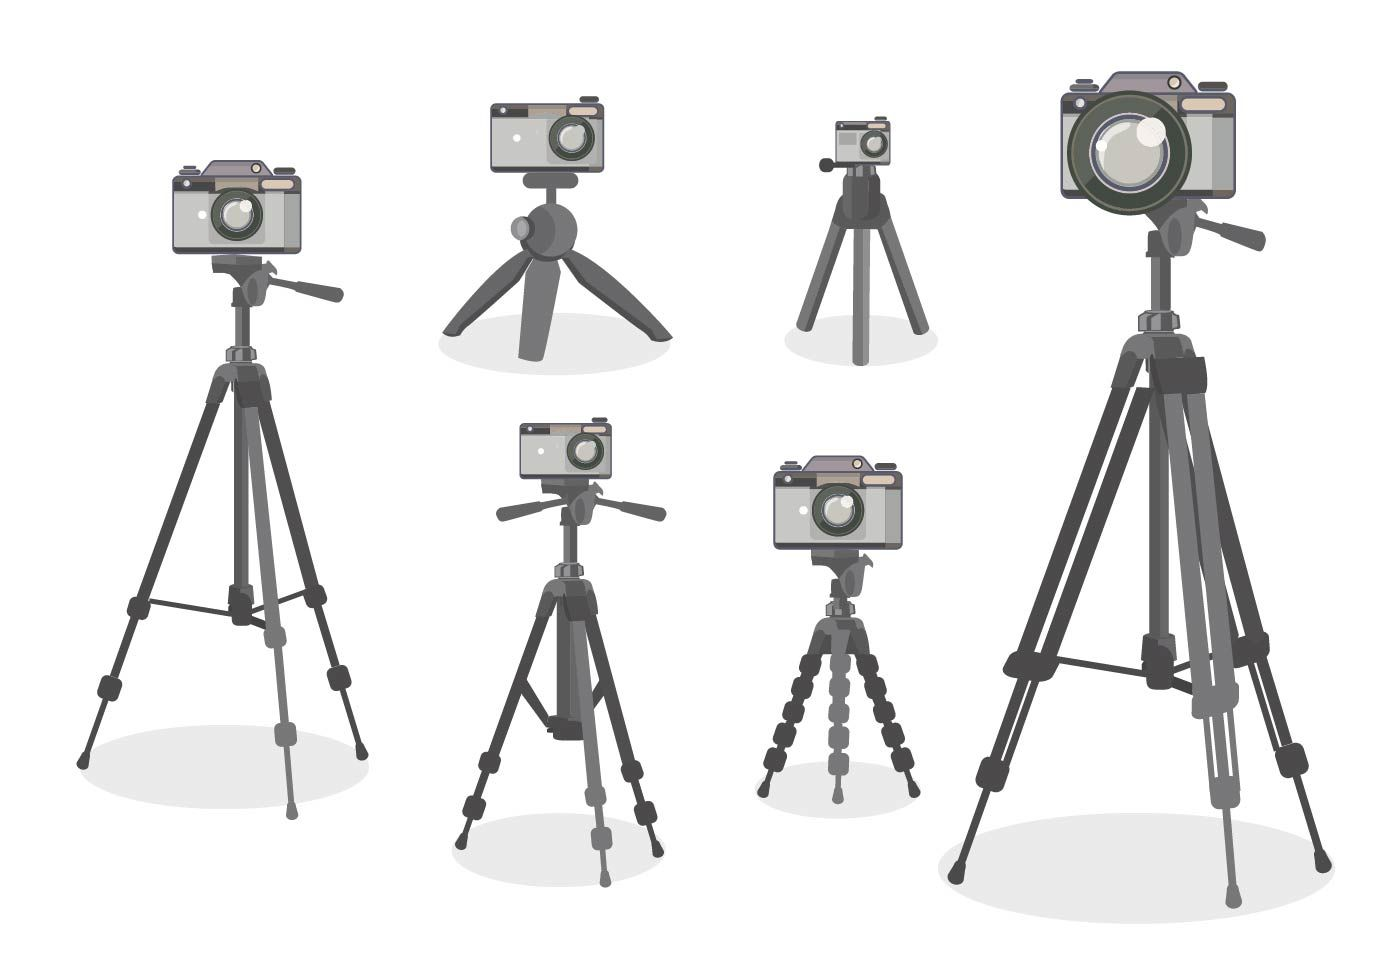 Camera Tripod Vector Flat Design style | Flat design